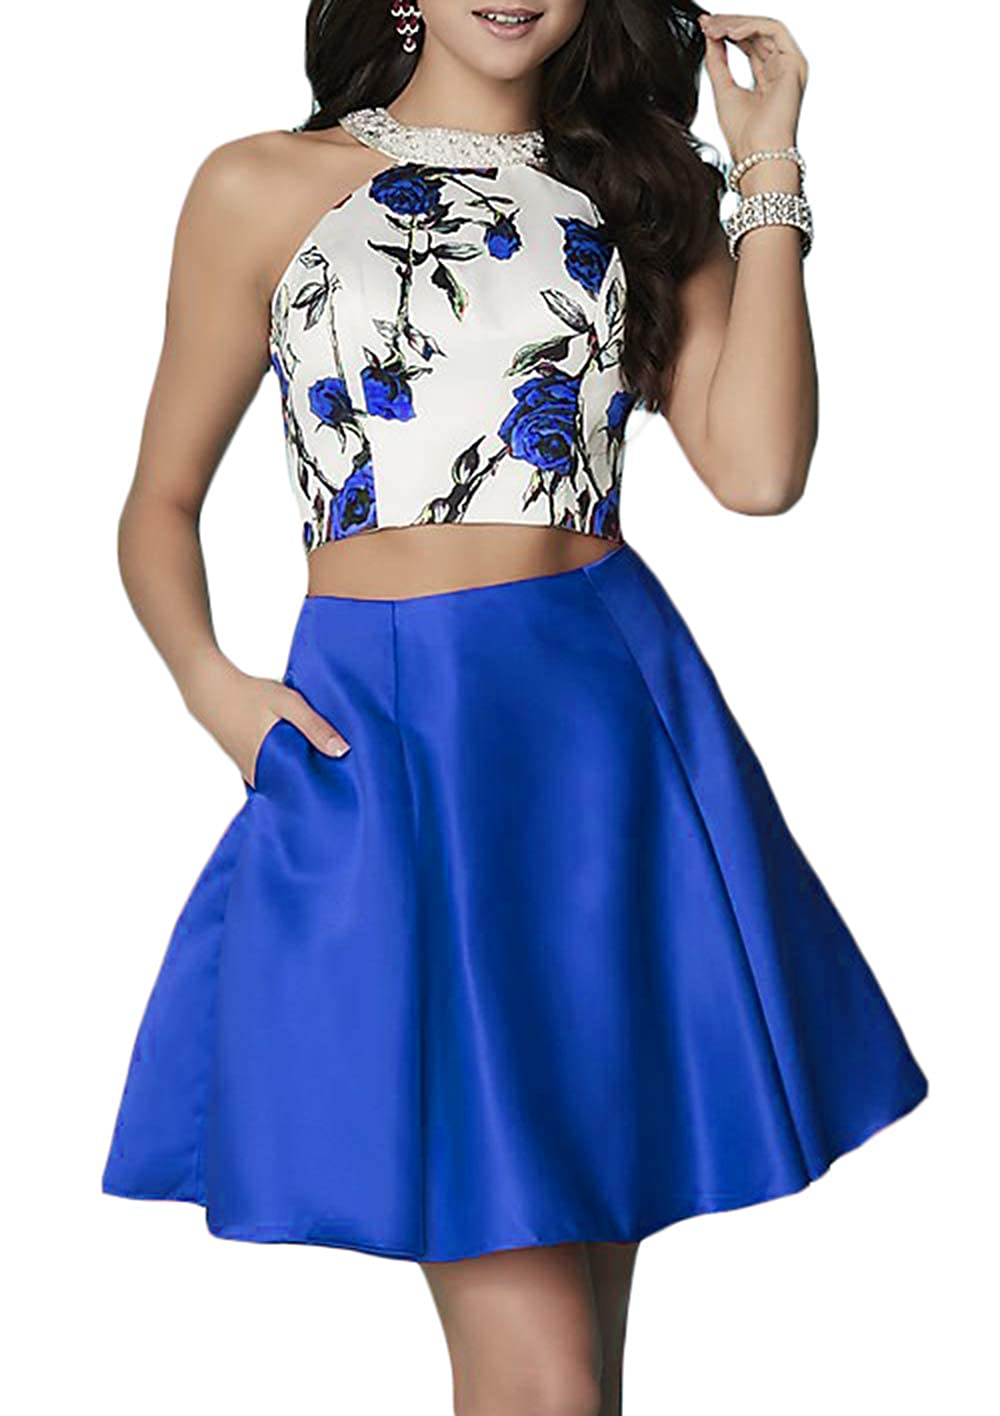 Royal bluee Ri Yun Floral Print Homecoming Dresses Short Two Piece 2018 Halter Beaded Backless Prom Dresses with Pockets